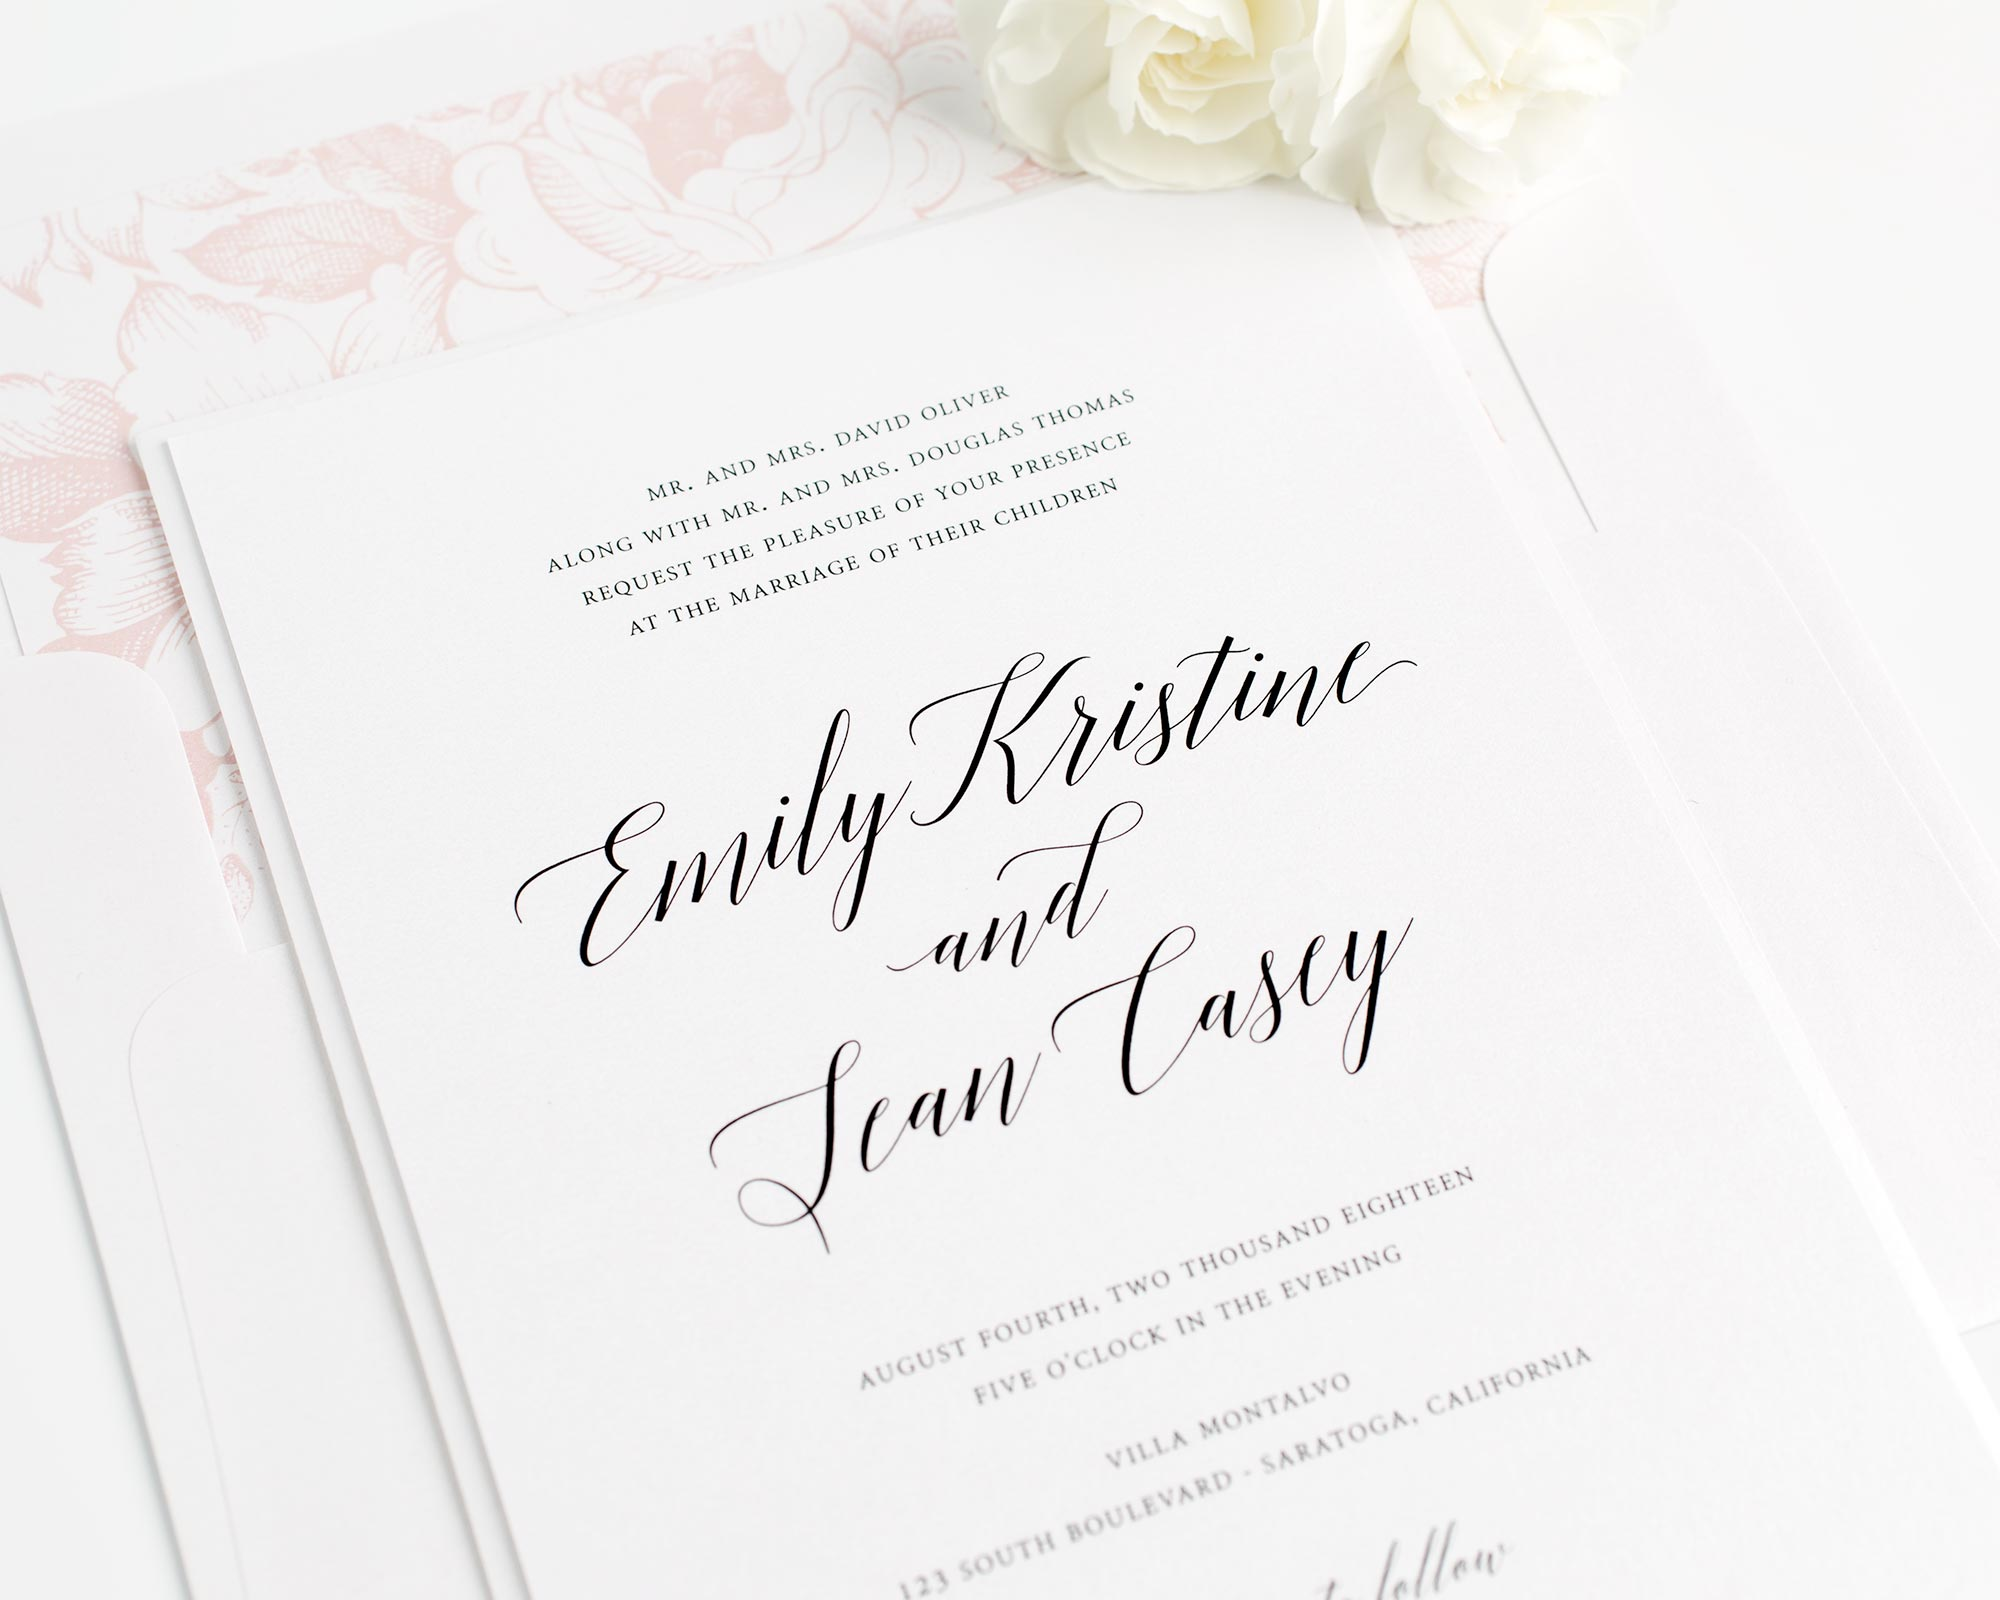 Romantic Wedding Invitations in Blush Pink with Floral Pattern